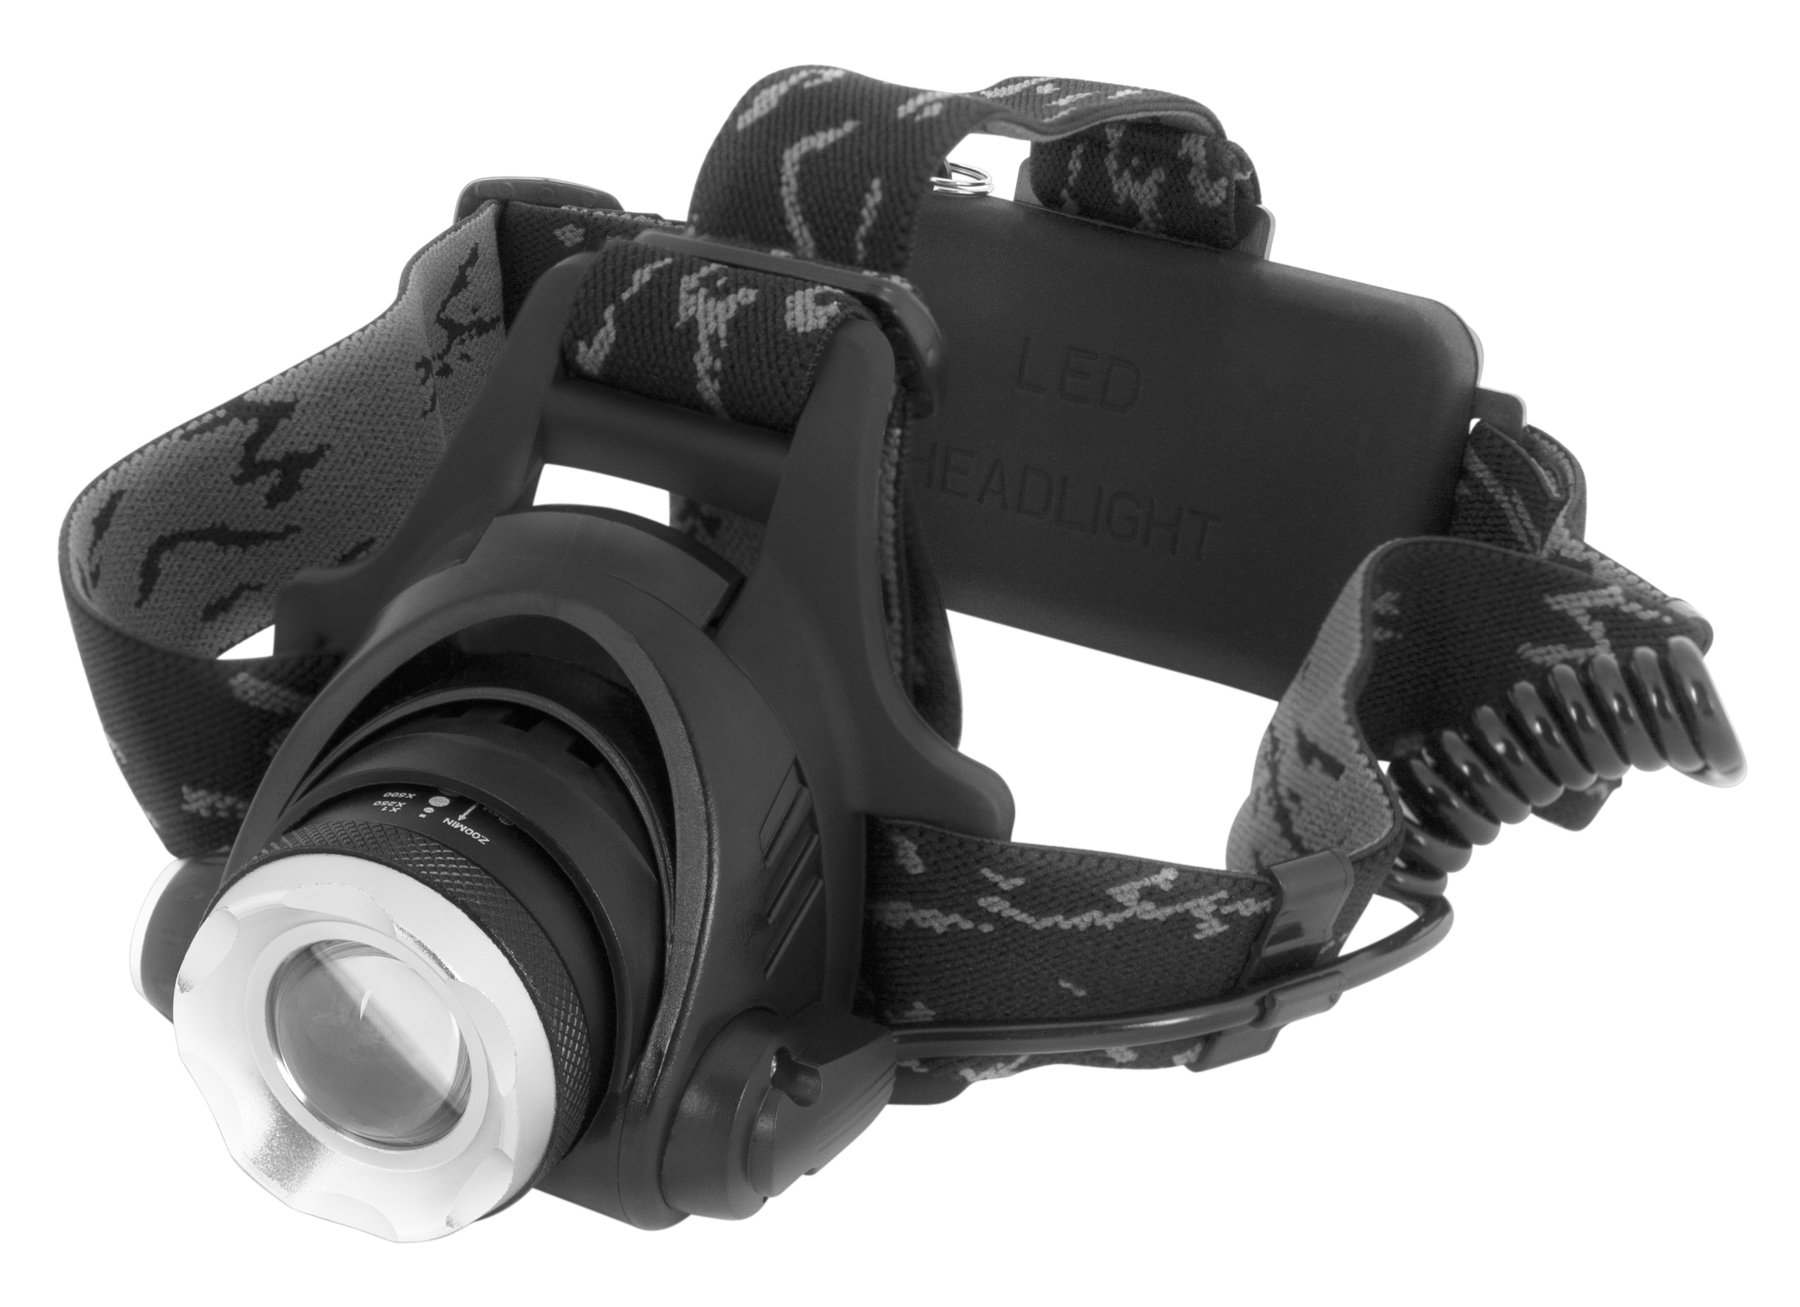 ATAK Model 560 Rechargeable LED 500 Lumens Pro-Focus Headlamp